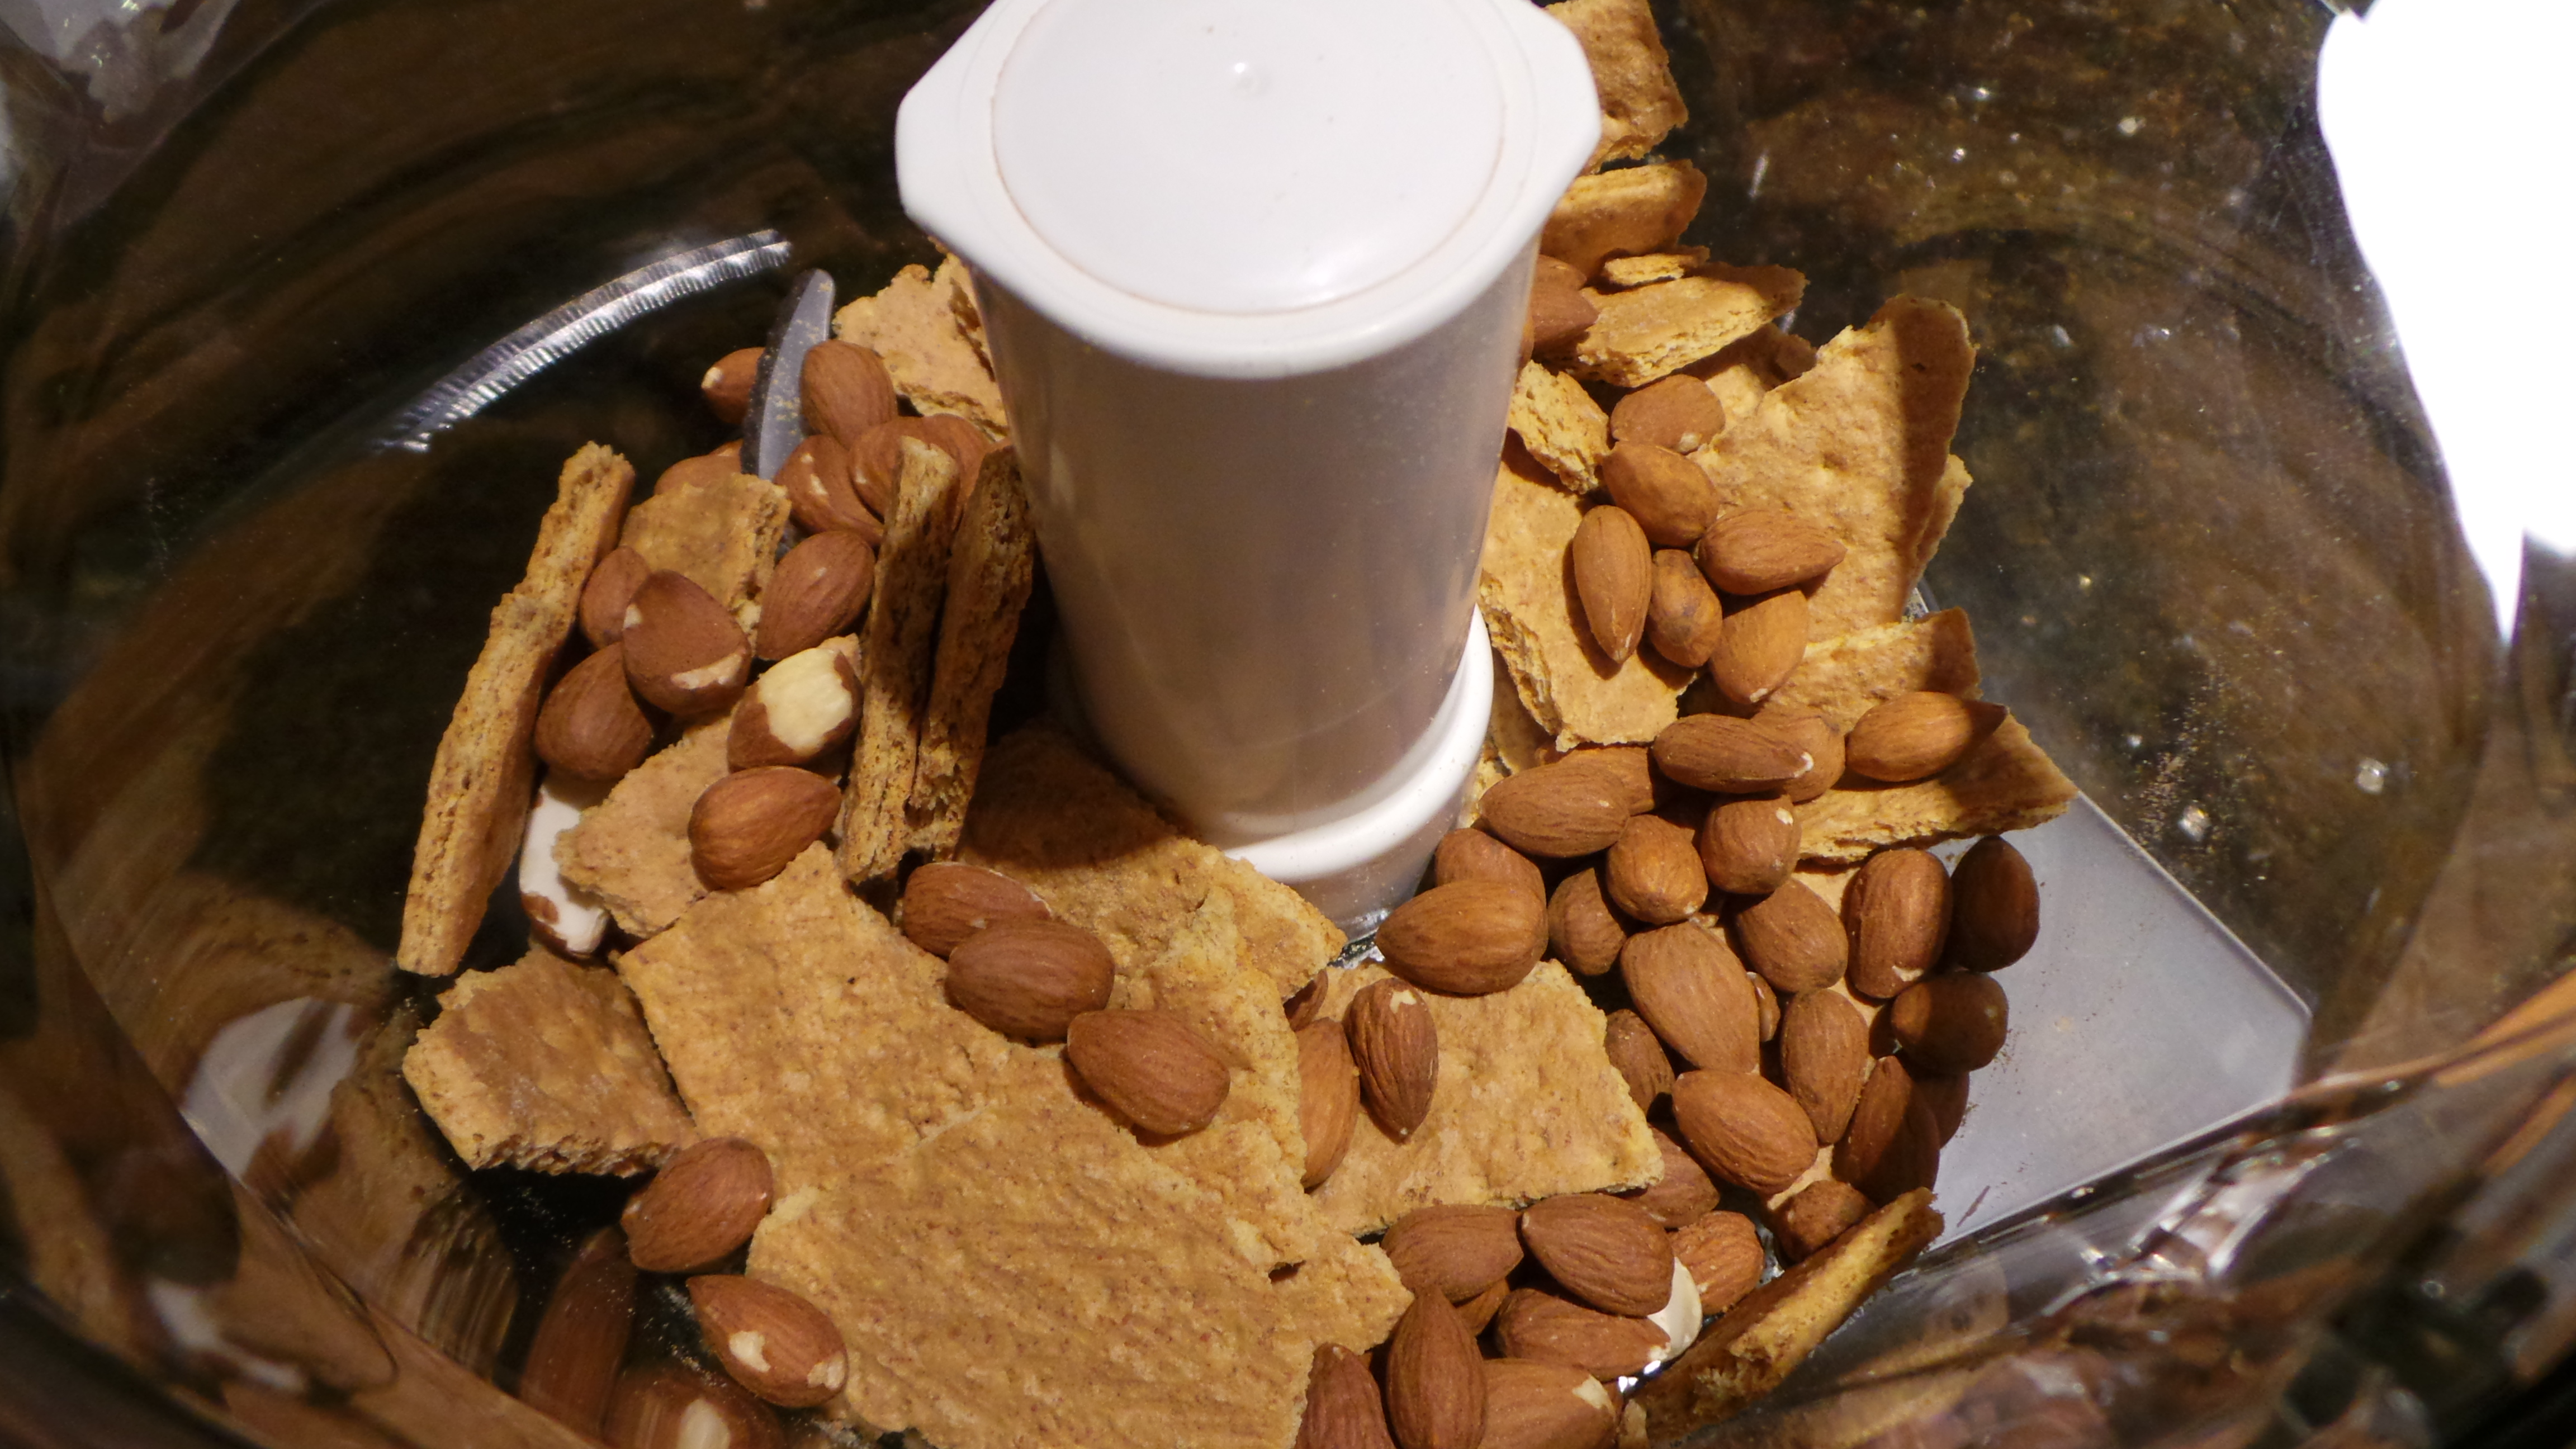 Almonds and Graham Crackers In Food Processor for Crust of Nectarine White Chocolate Cream Pie